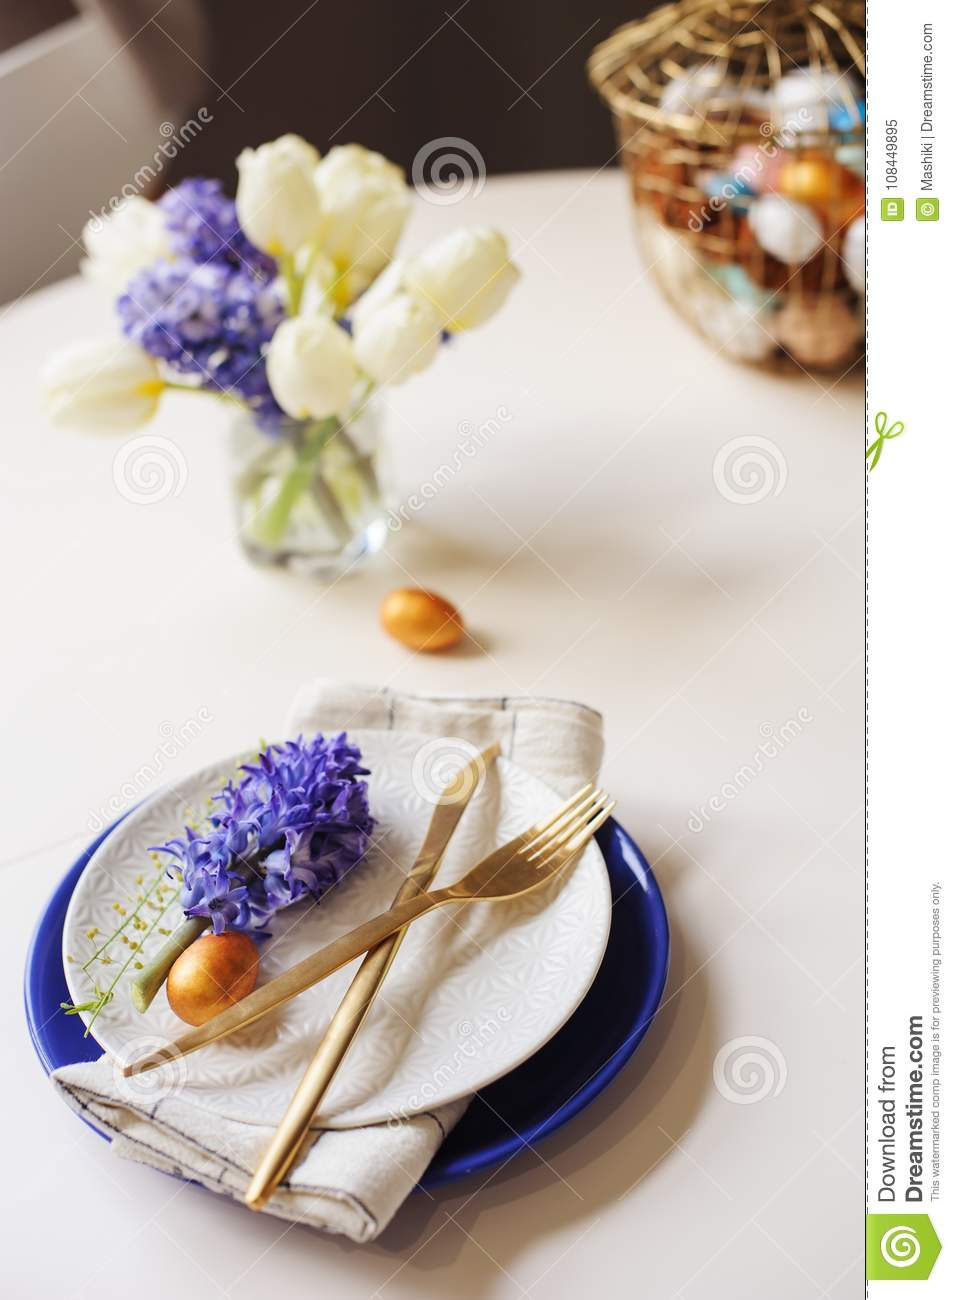 Easter holiday festive dining table with plate, golden cutlery, painted eggs and hyacinth flower on white background